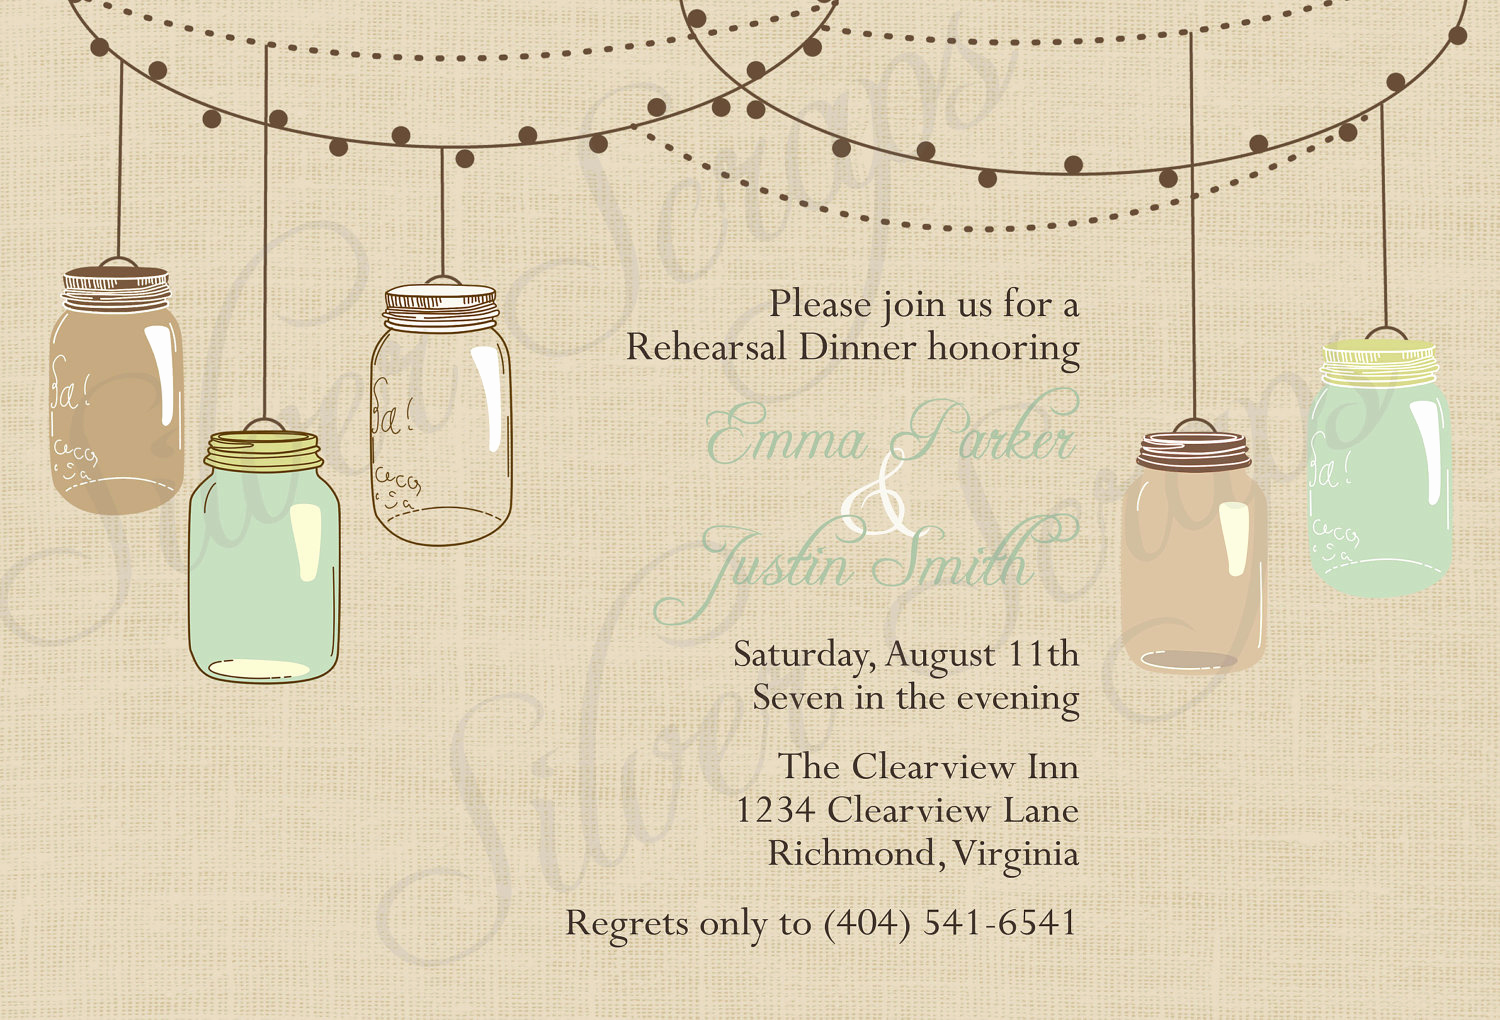 Mason Jar Invitation Template New Free Mason Jar Invitation Templates